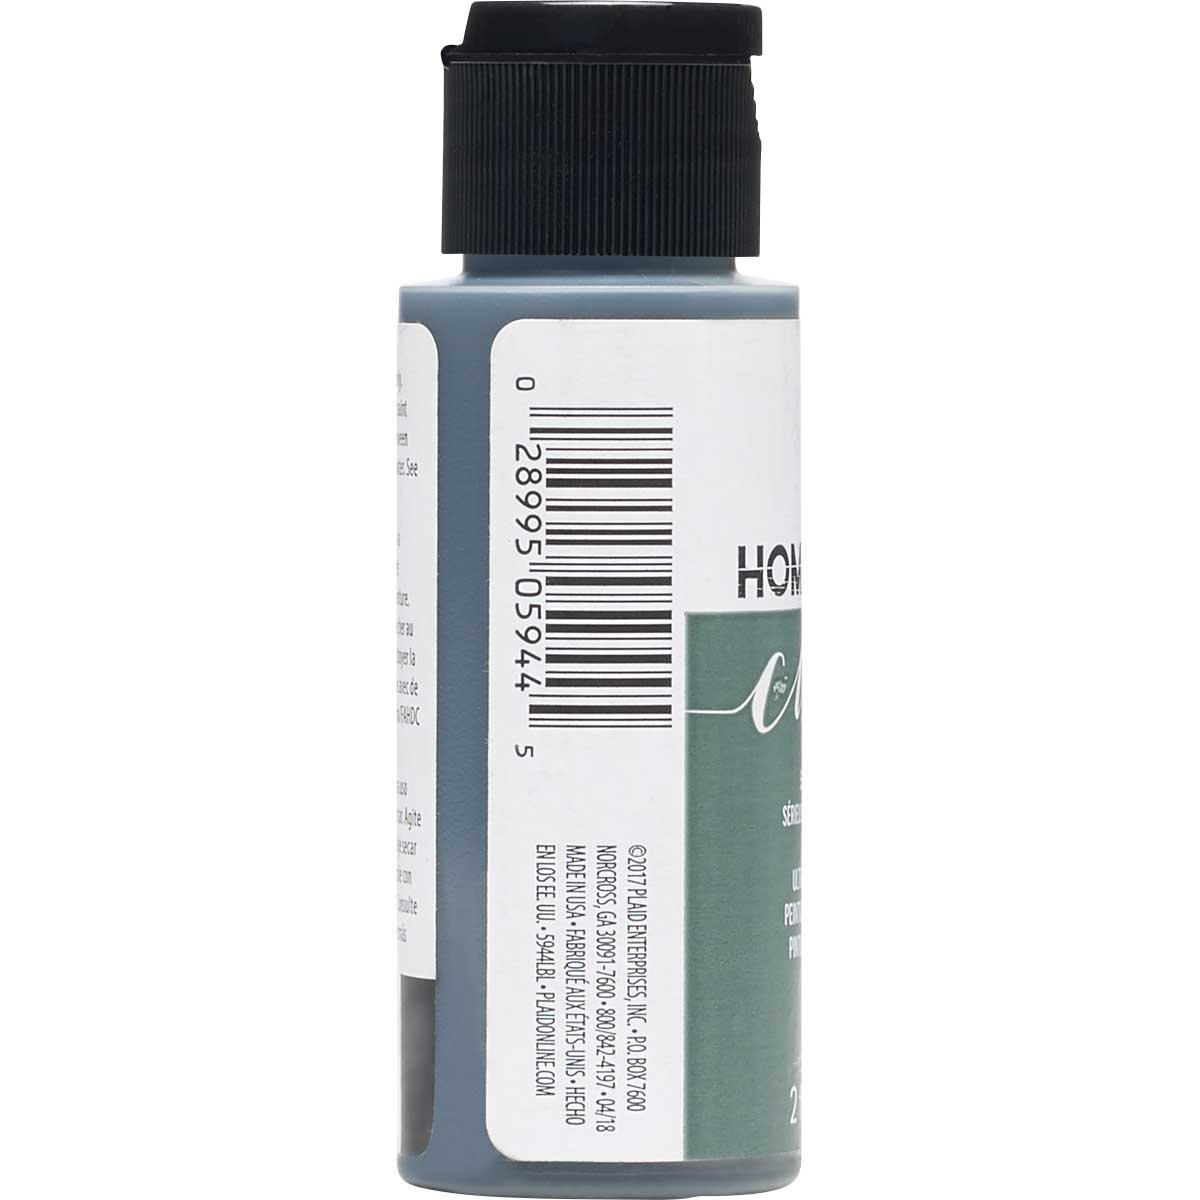 FolkArt ® Home Decor™ Chalk - Seriously Gray, 2 oz. - 5944